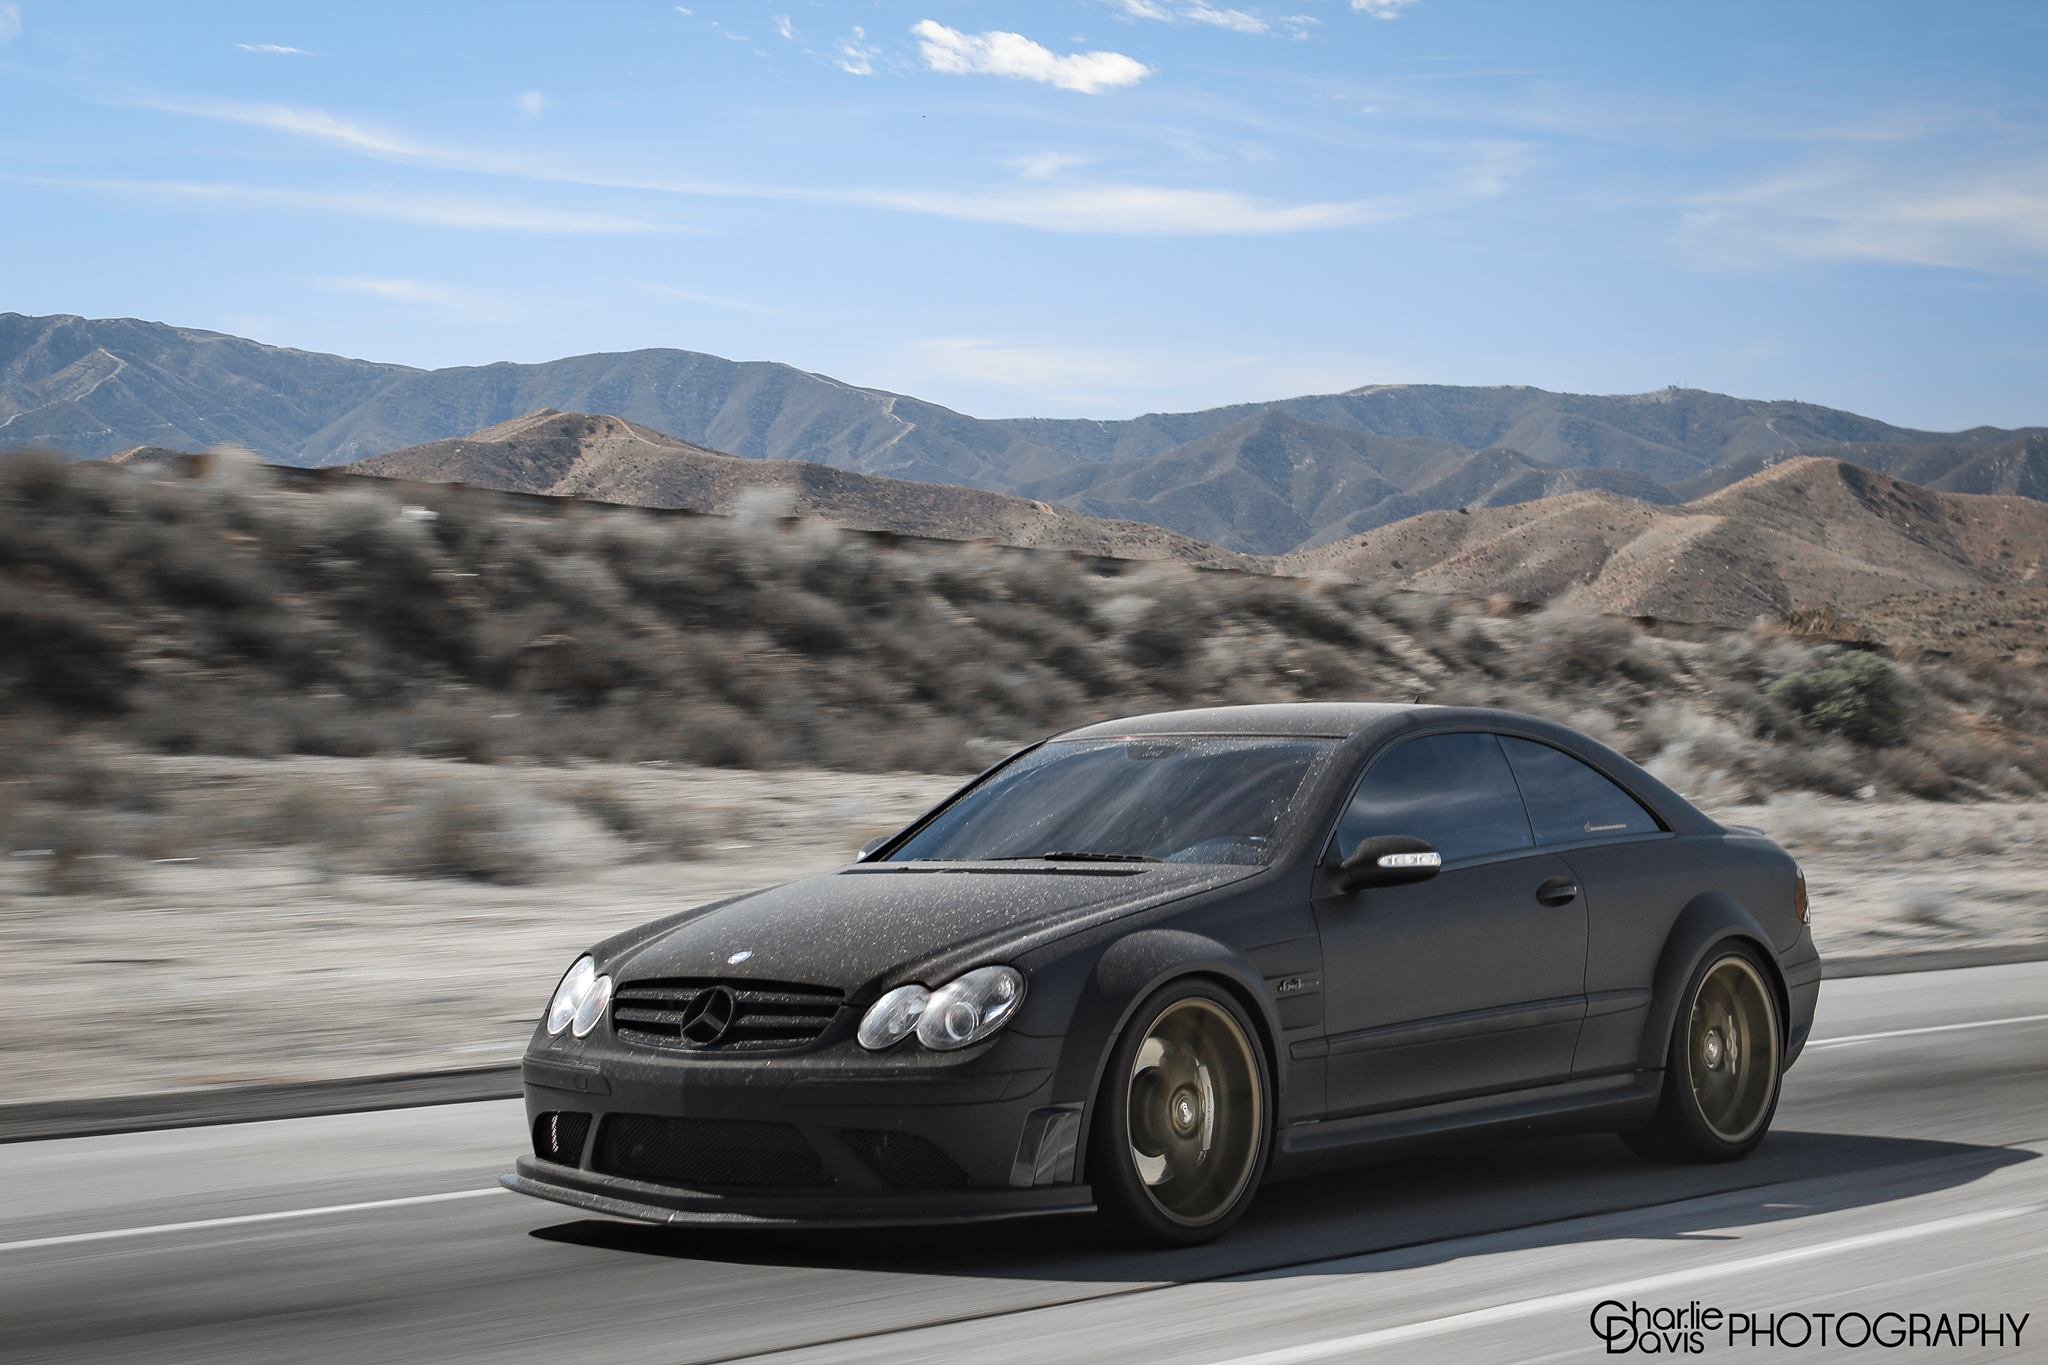 Pictures video clk63 amg black series in the desert for Mercedes benz clk63 amg black series for sale